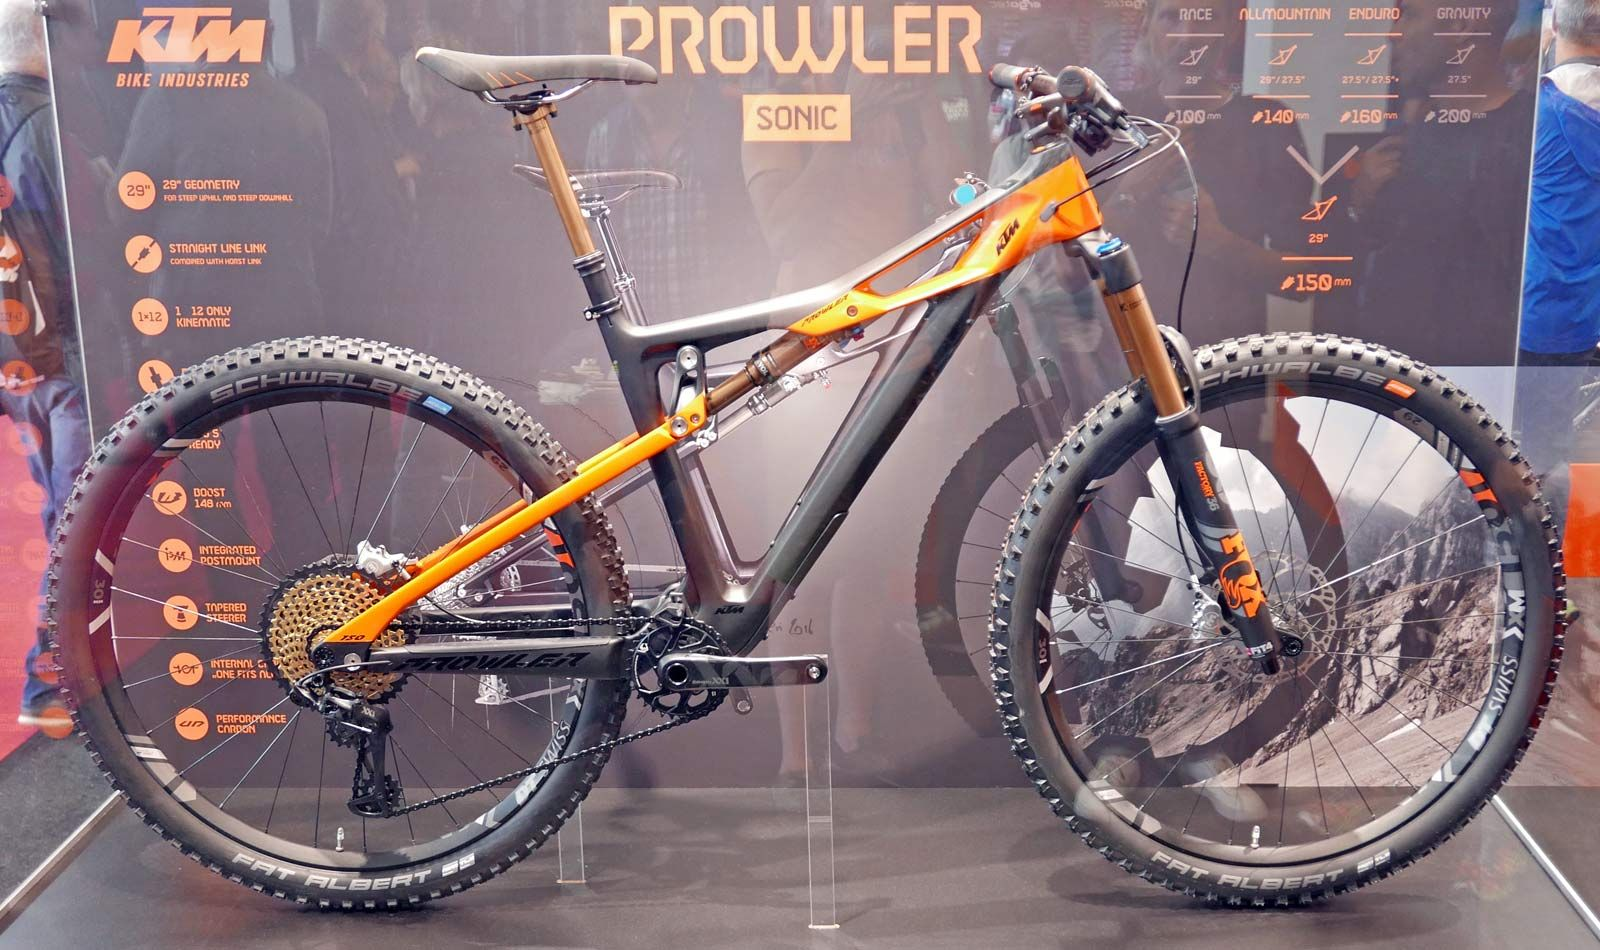 Eb17 Ktm Offers A Closer Look At The Prowler All Mountain Bike